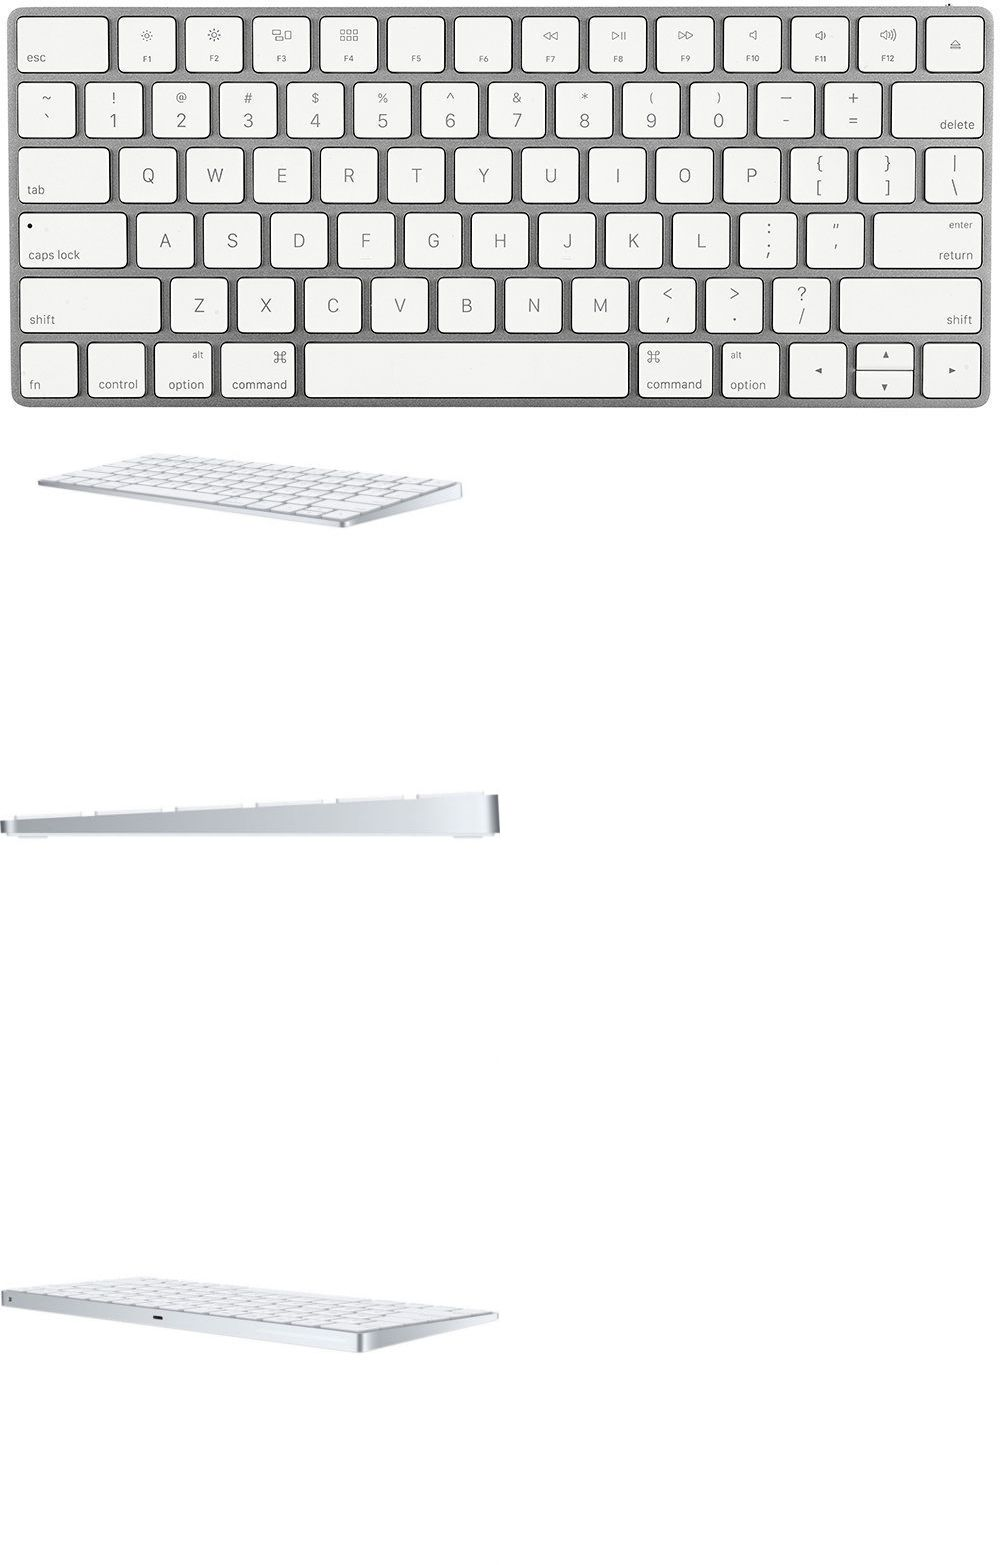 c417ac0313e Keyboards Mice and Pointers 3676: Apple Magic Keyboard 2 (Mla22ll A) Rechargeable  Wireless Ready -> BUY IT NOW ONLY: $59.99 on #eBay #keyboards #pointers ...